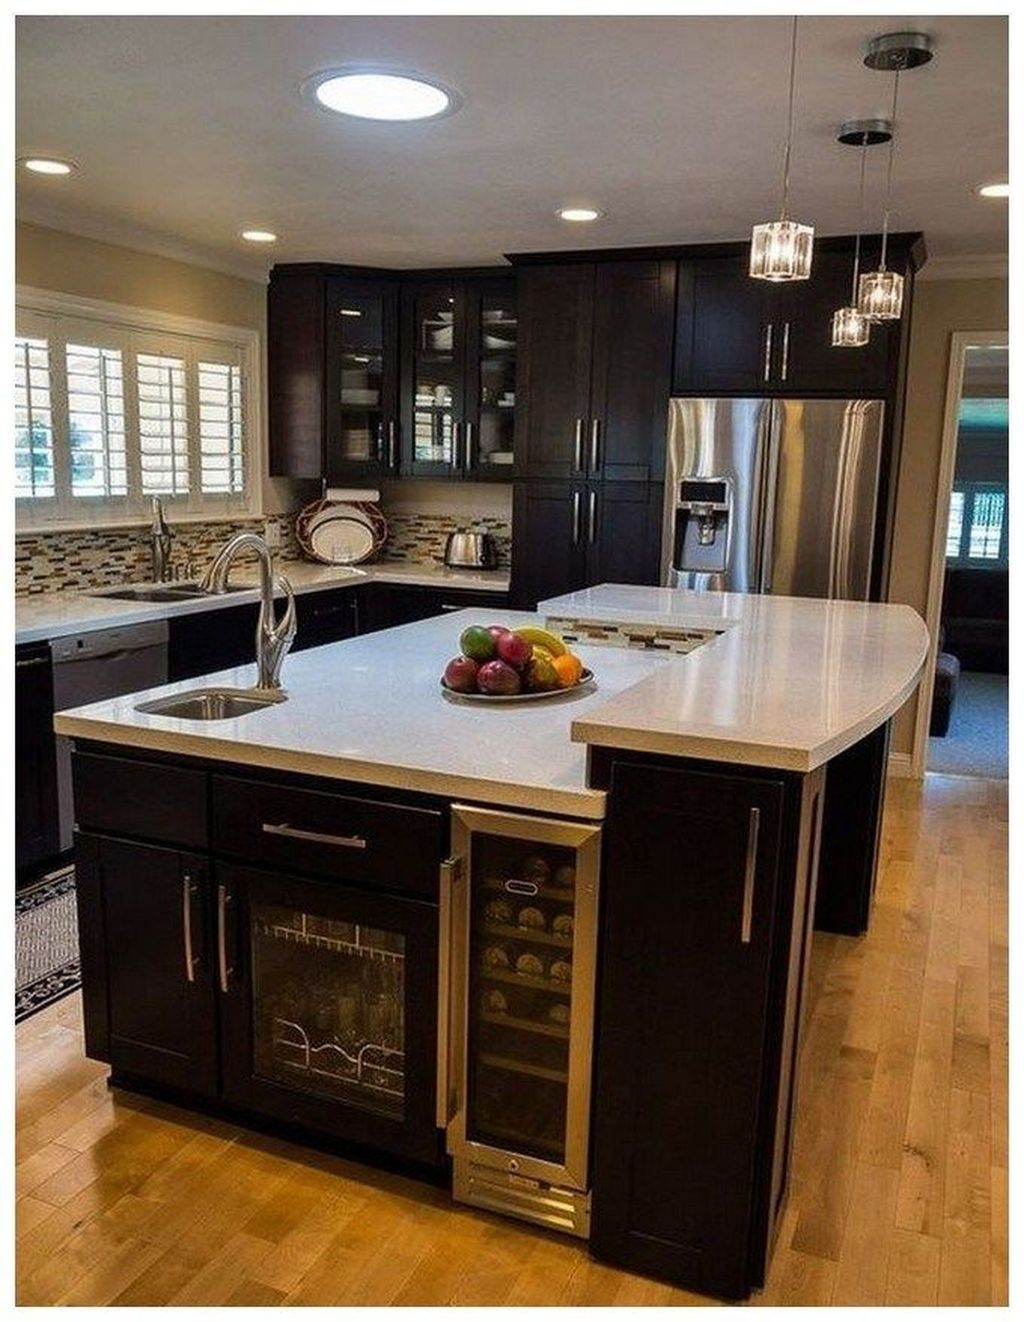 Impressive Kitchen Design Ideas You Can Try In Your Dream Home 02